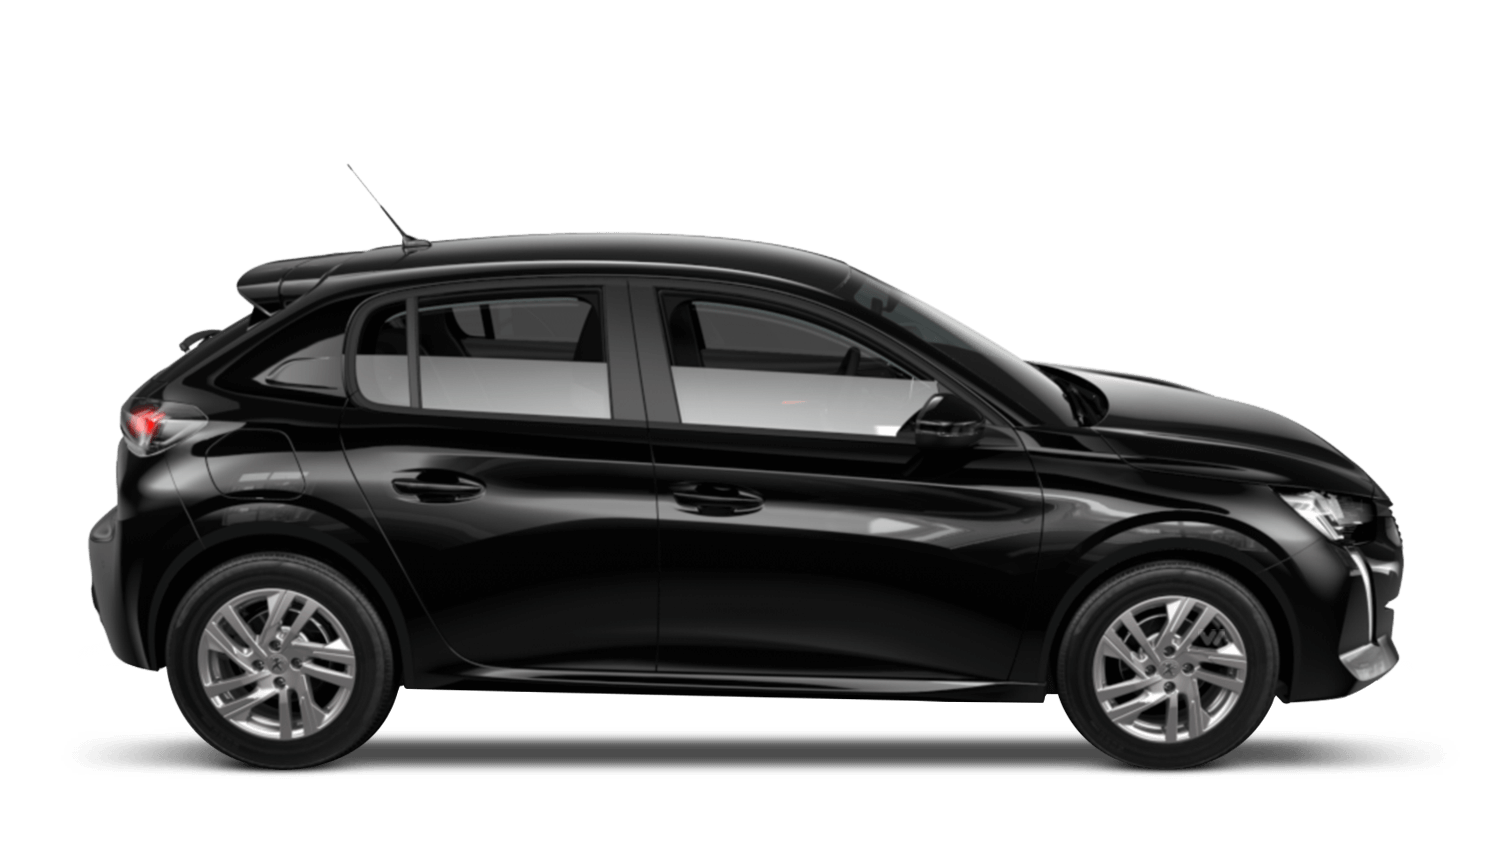 Nera Black All-new Peugeot 208